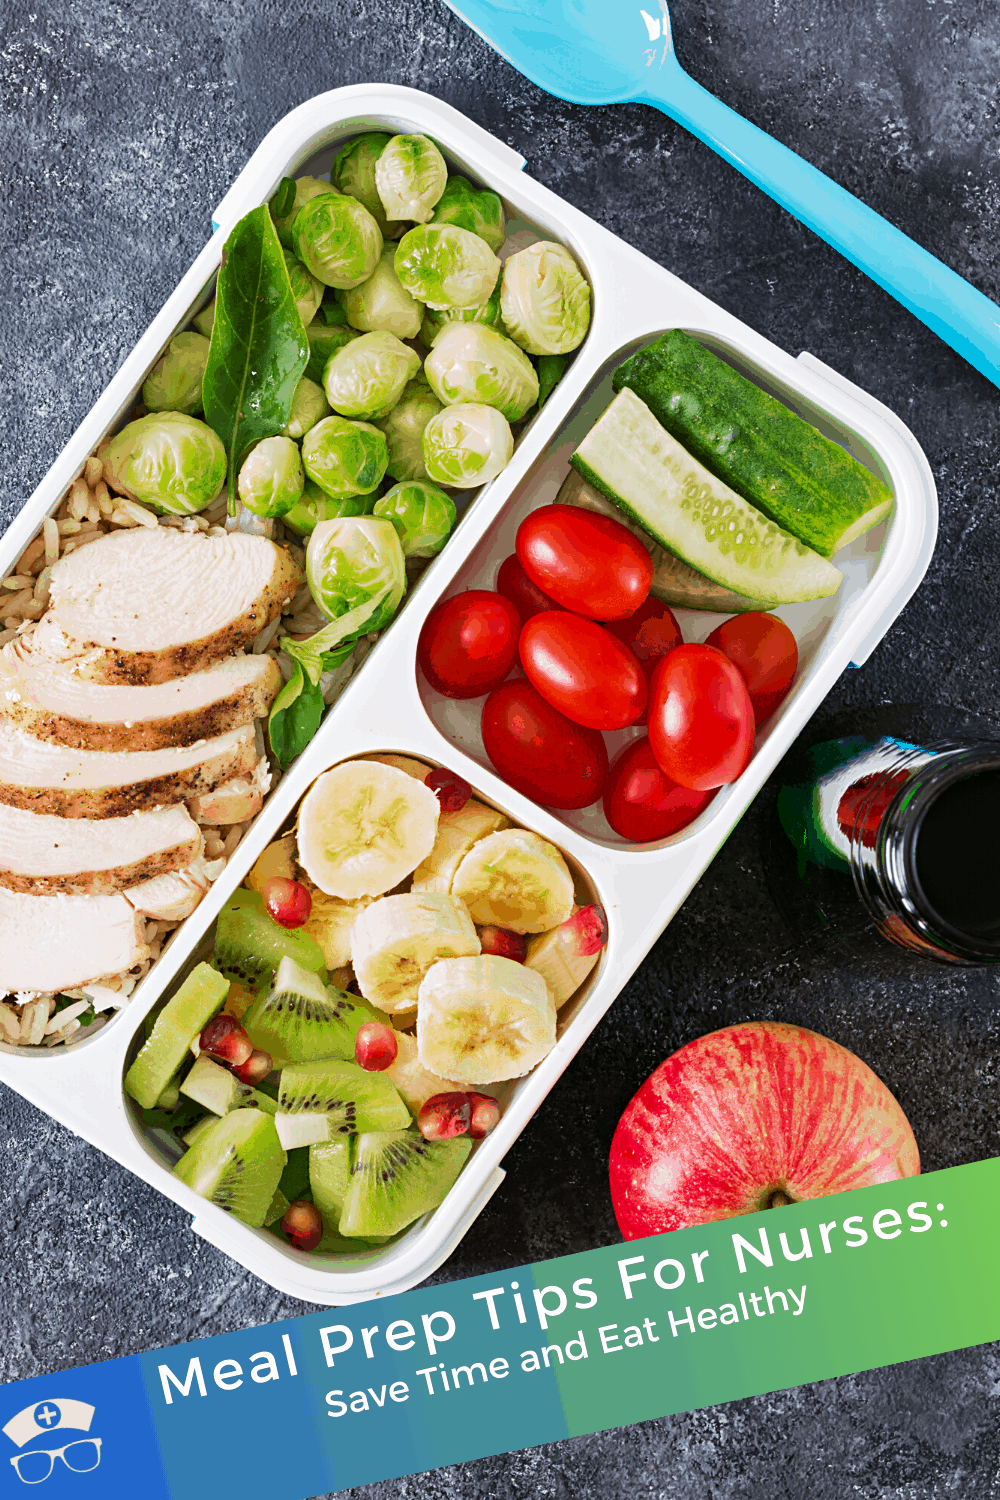 Meal Prep Tips For Nurses: Save Time and Eat Healthy. When you are short on time but still want to eat healthy, meal prep is the answer. These meal prep tips for busy people - like nurses - are amazing! #thenerdynurse #nurse #nurses #mealprep #nursemeals #healthy